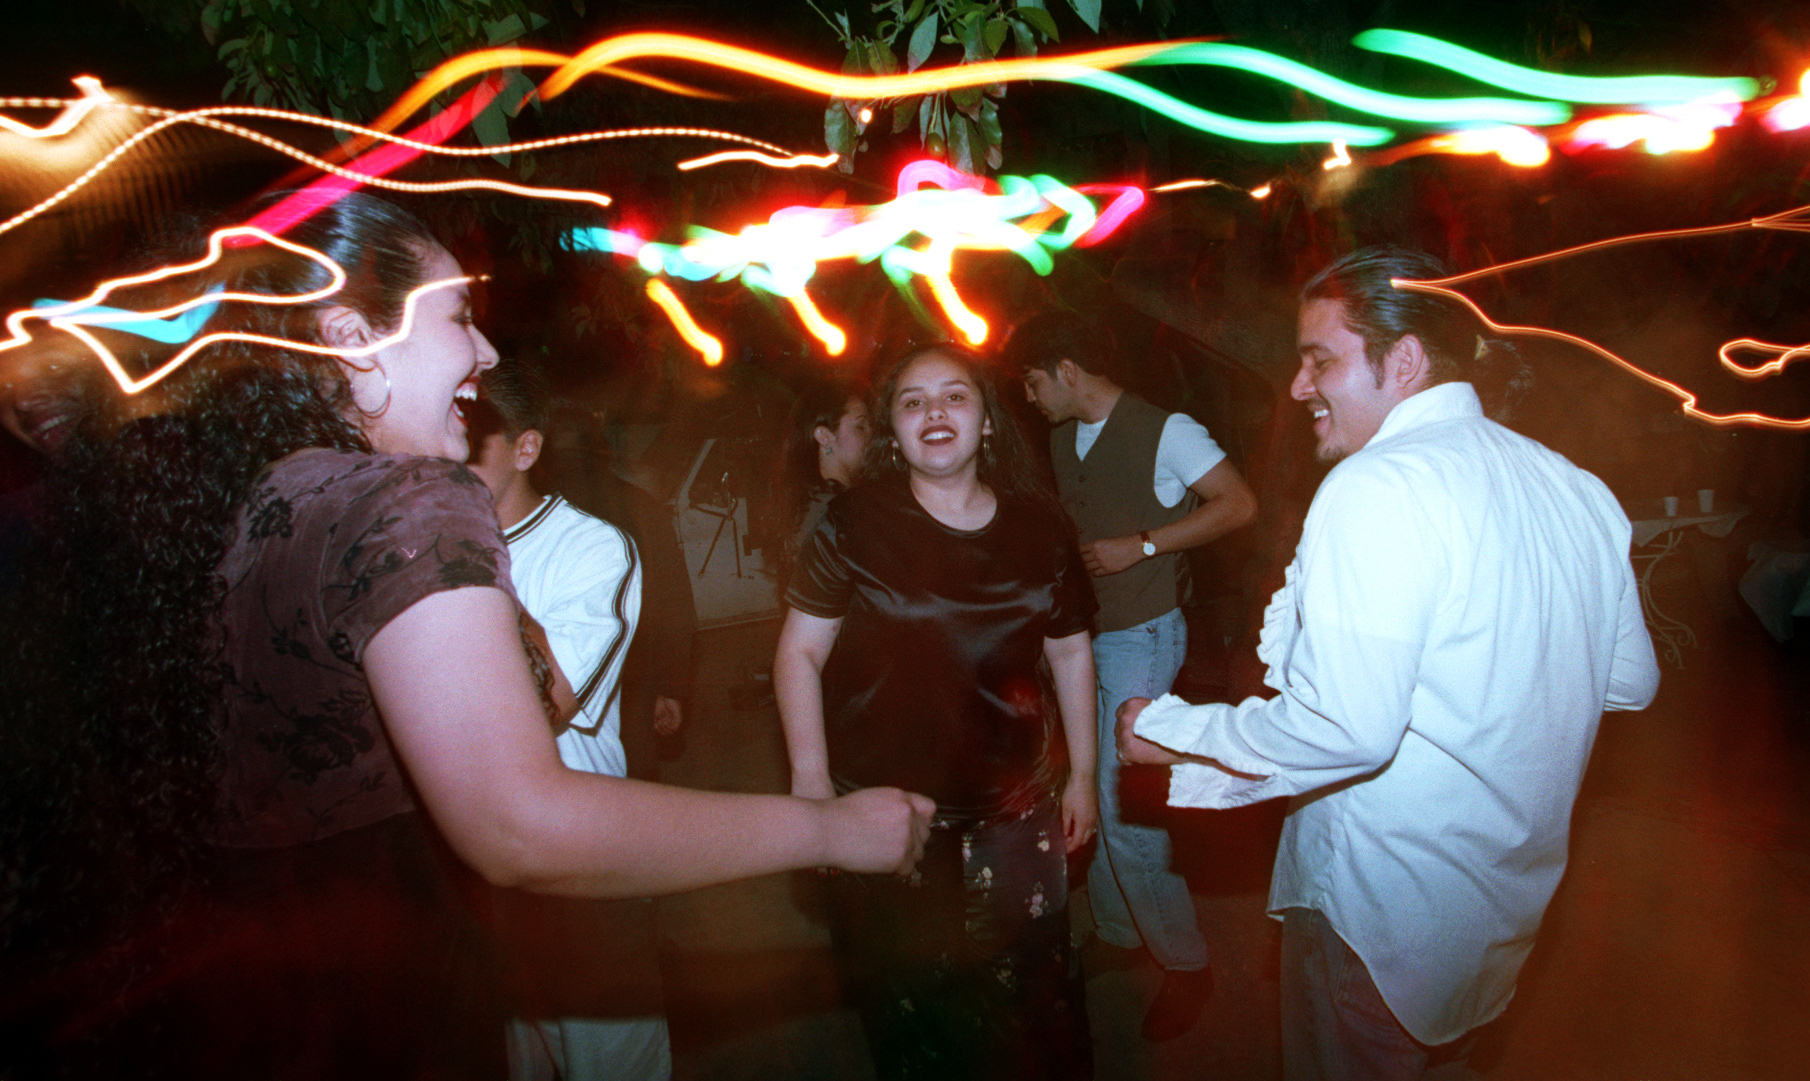 Araceli, left, with friends and family dance the night away in Santa Ana at a cousin's first communion party. ©Gail Fisher Los Angeles Times